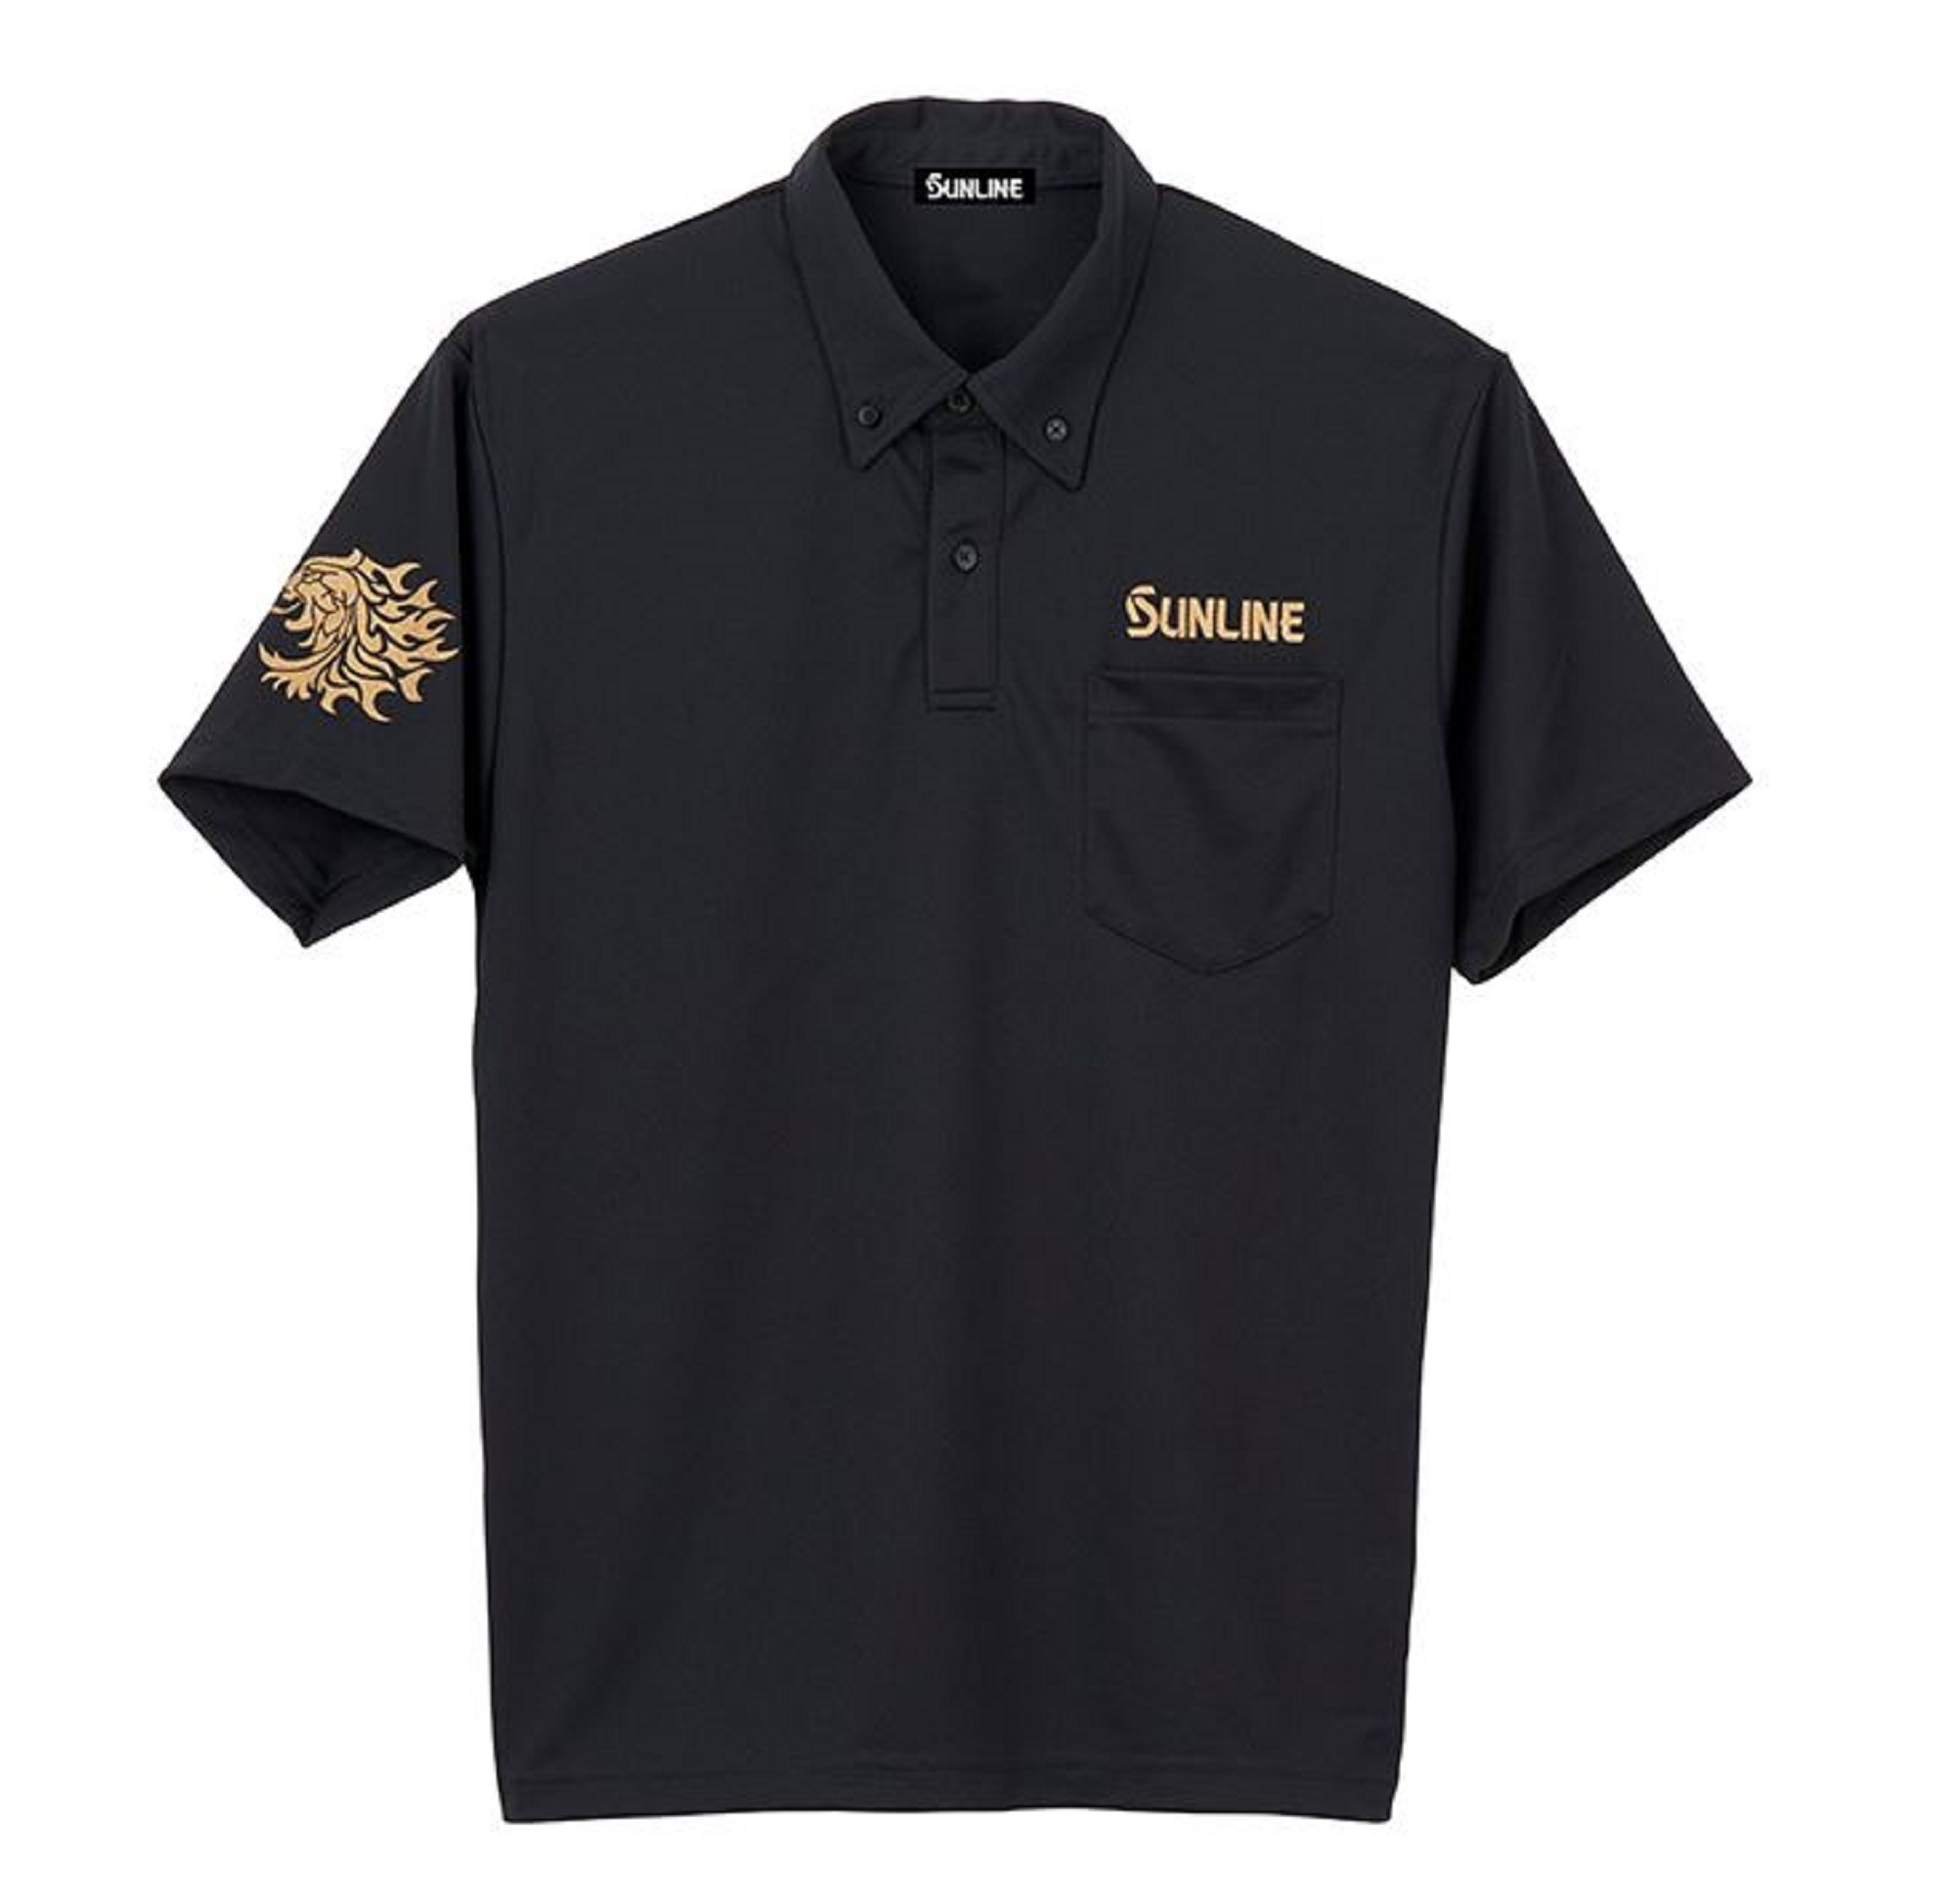 Sunline SUW-15025DP Polo Shirt Dri Fit Short Sleeve Black Size LL (3903)